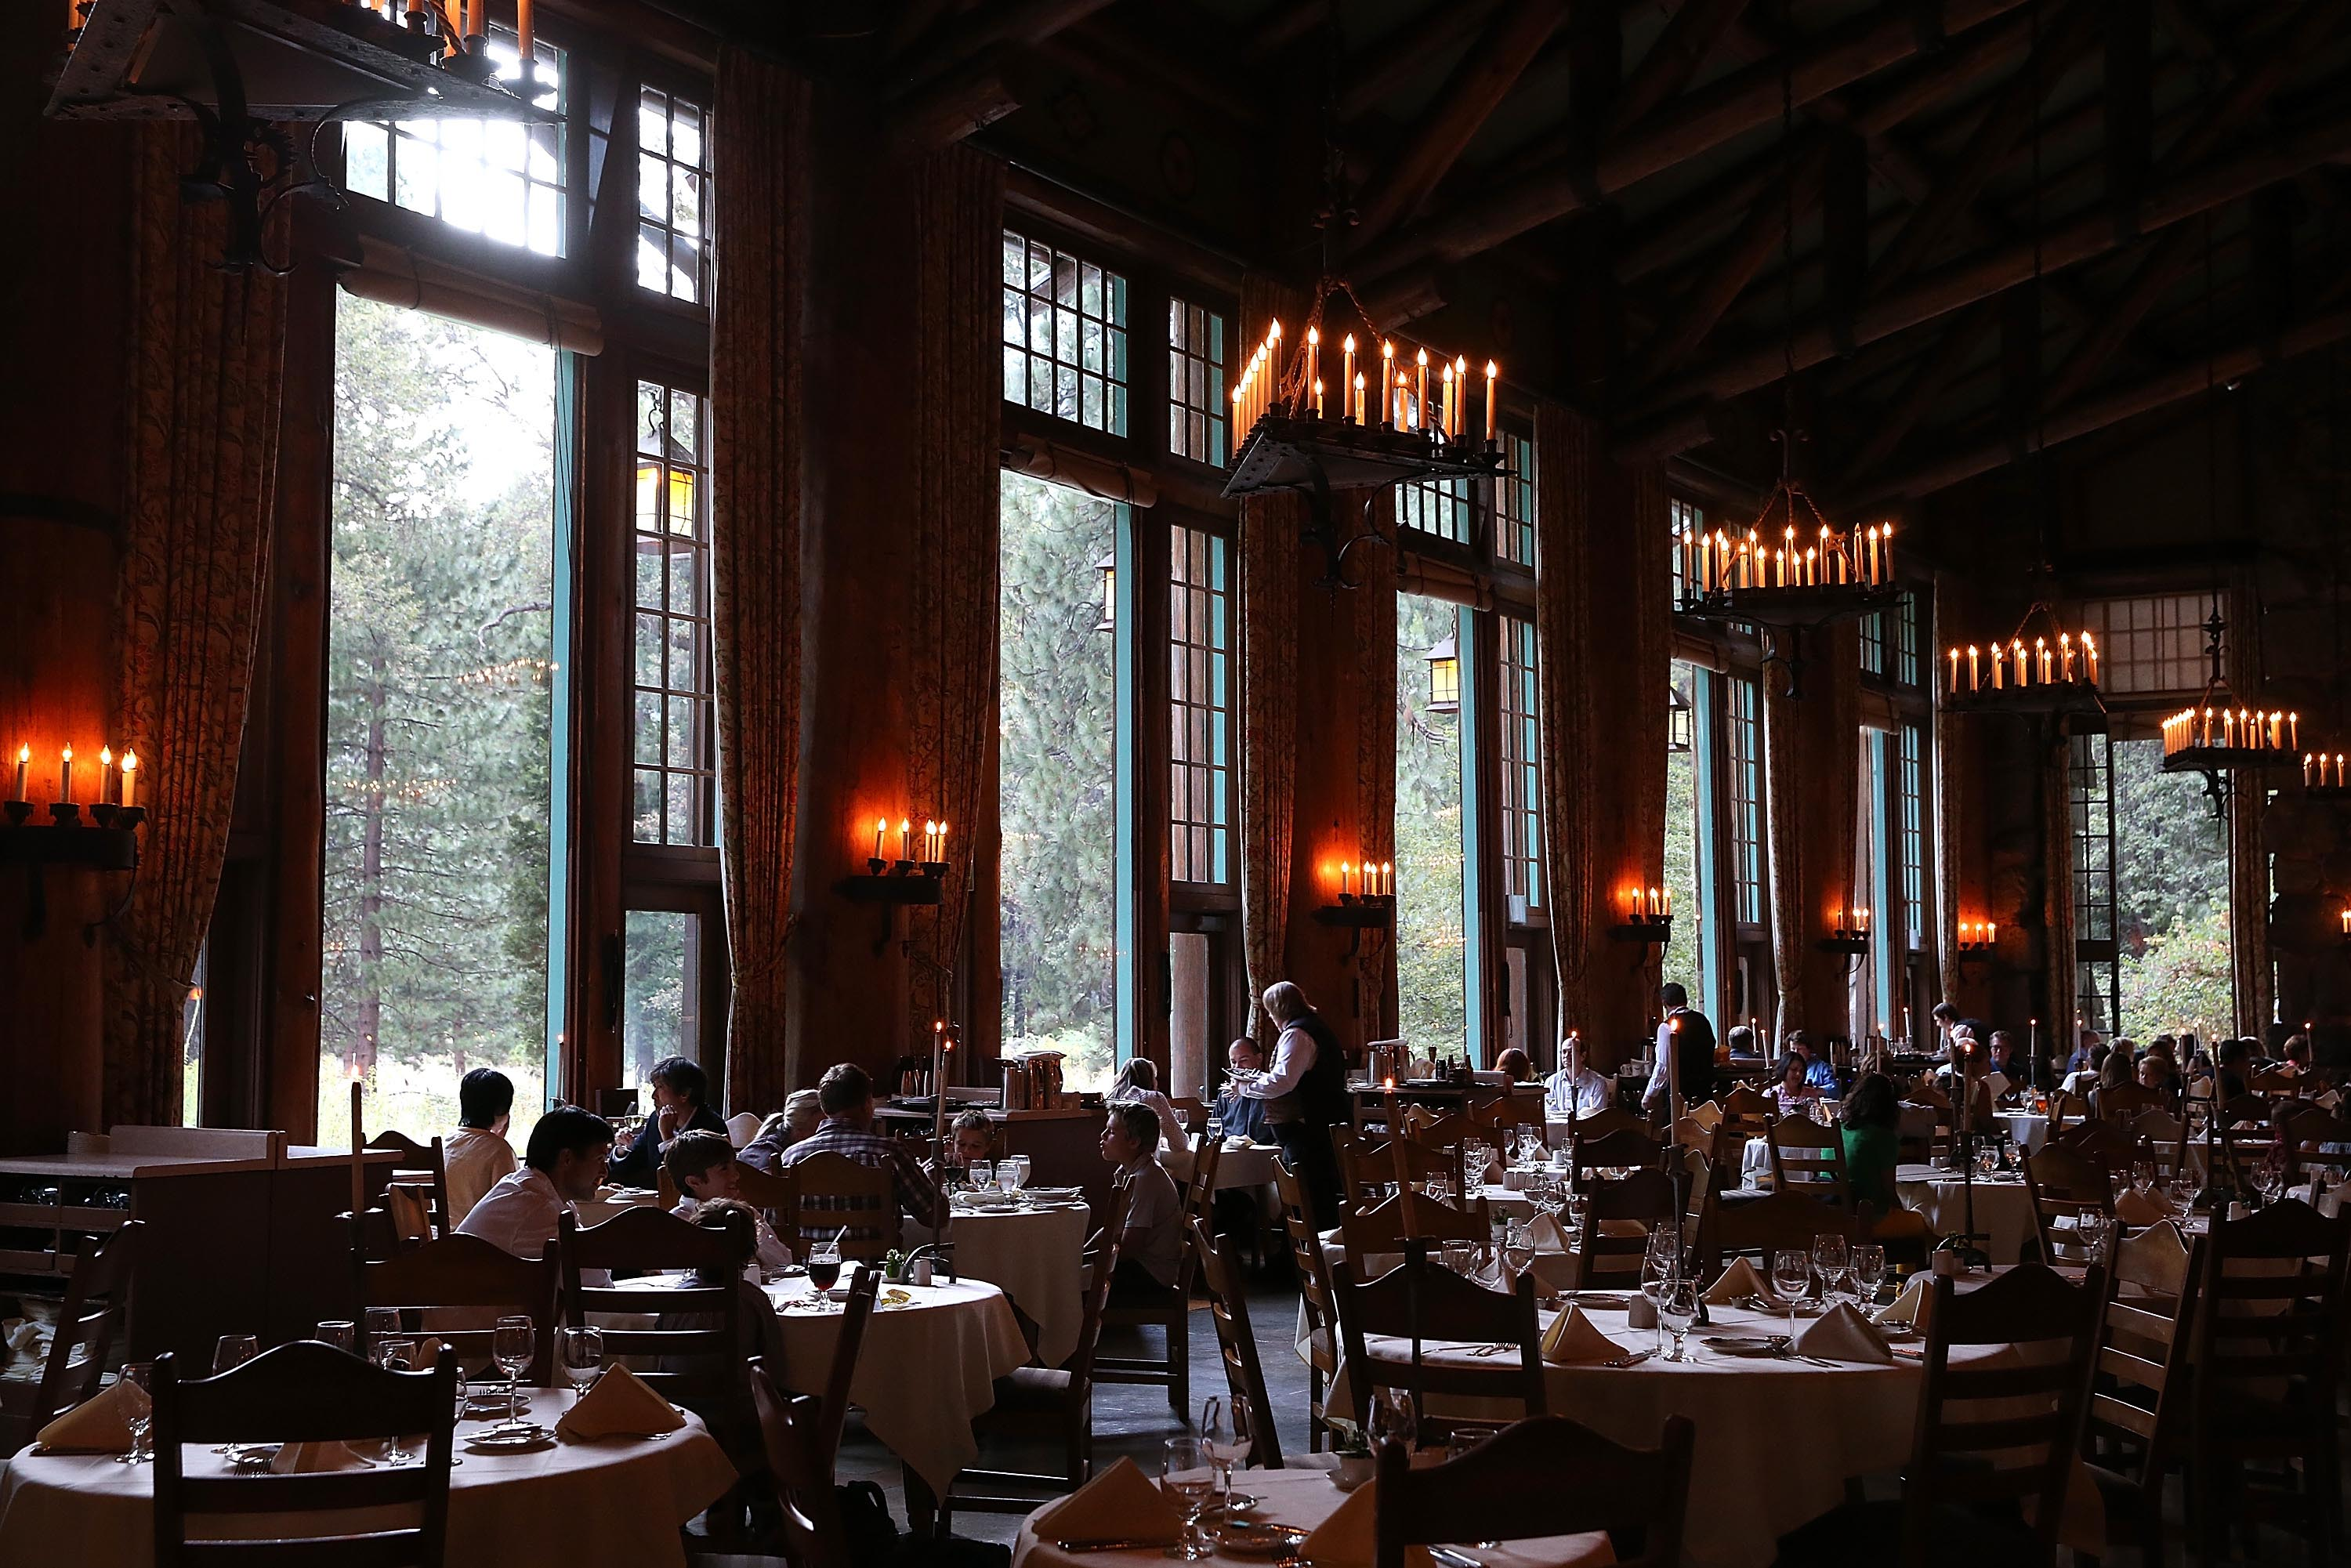 Dining in the Wilderness: The Restaurants in America's National Parks